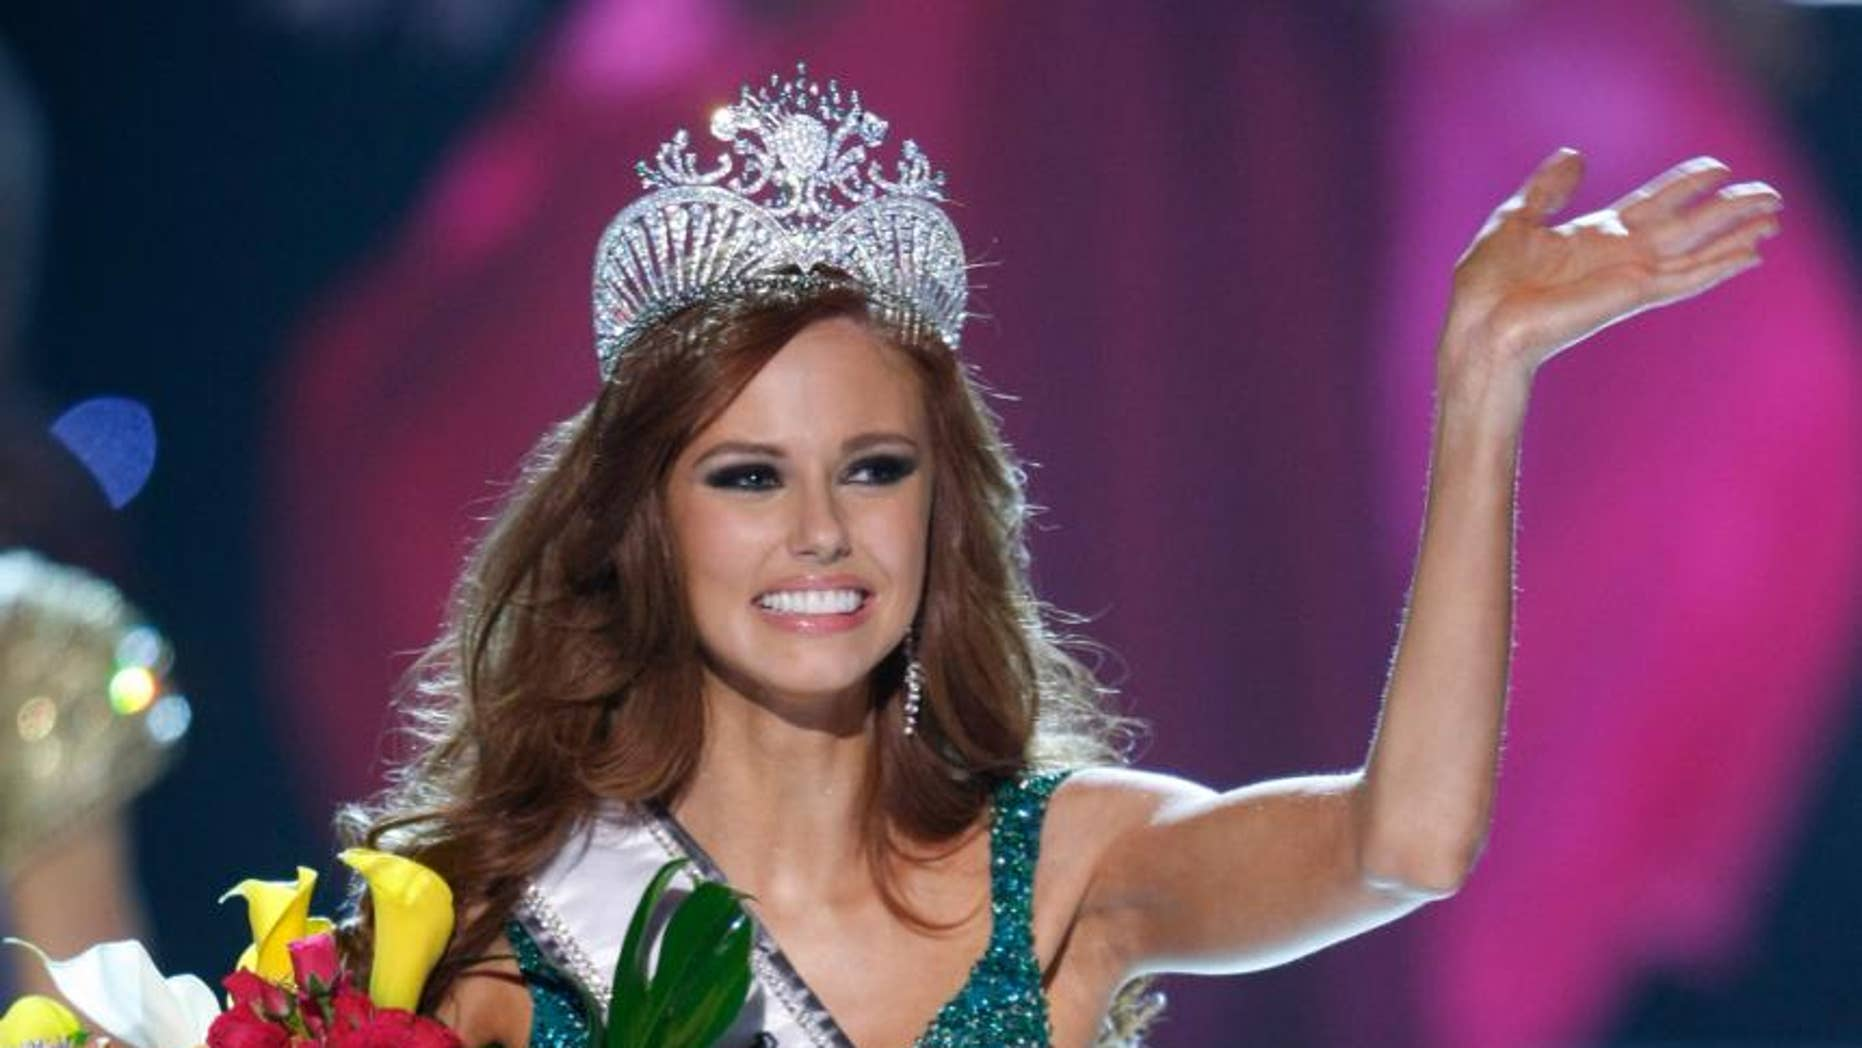 Campanella at the 2011 Miss America Pageant. (Reuters)